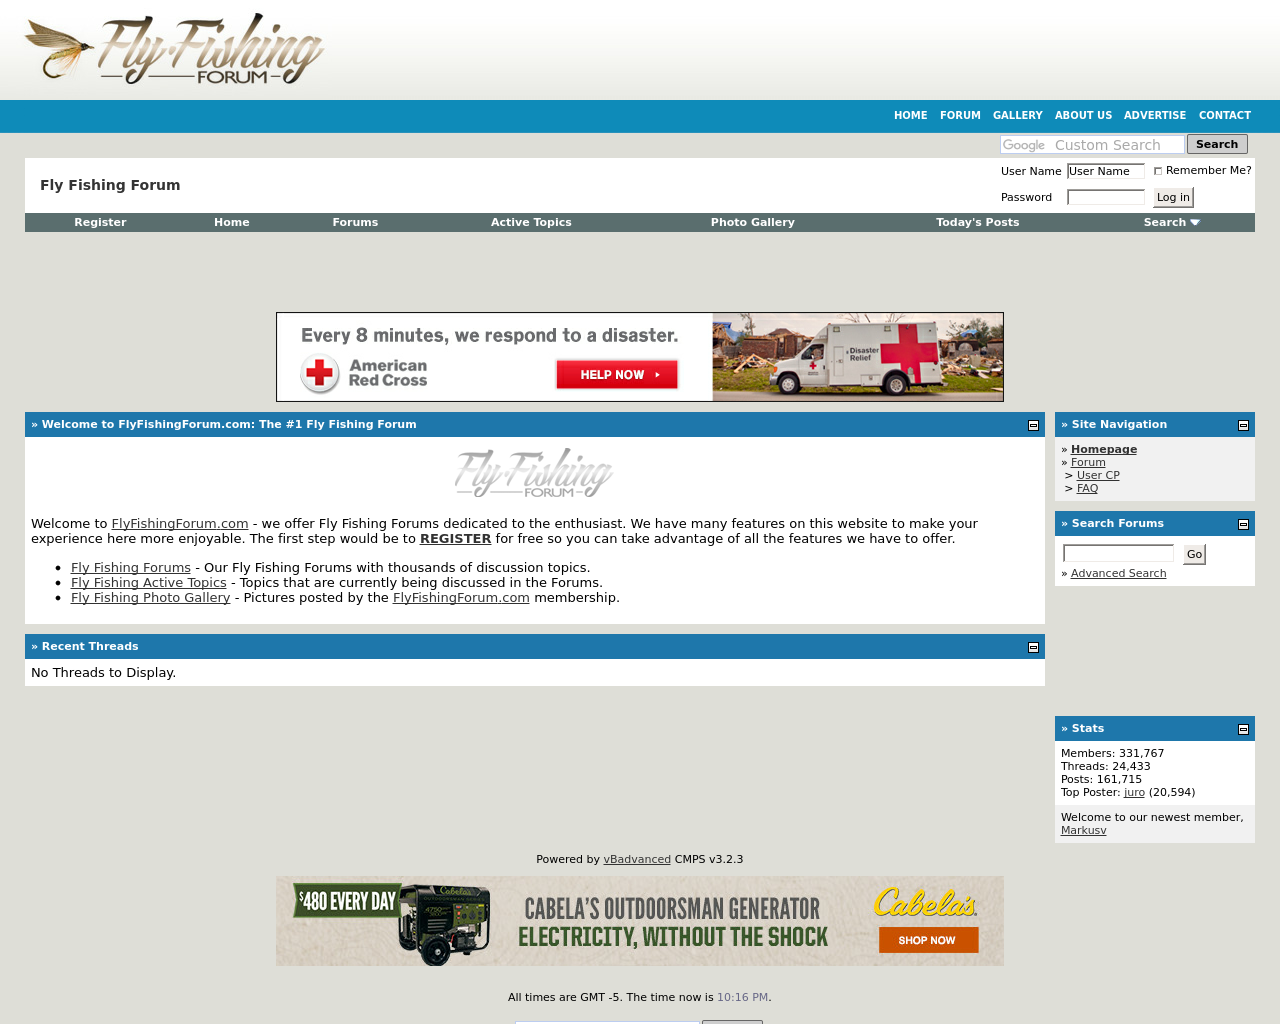 Fly-Fishing-Forum-Advertising-Reviews-Pricing